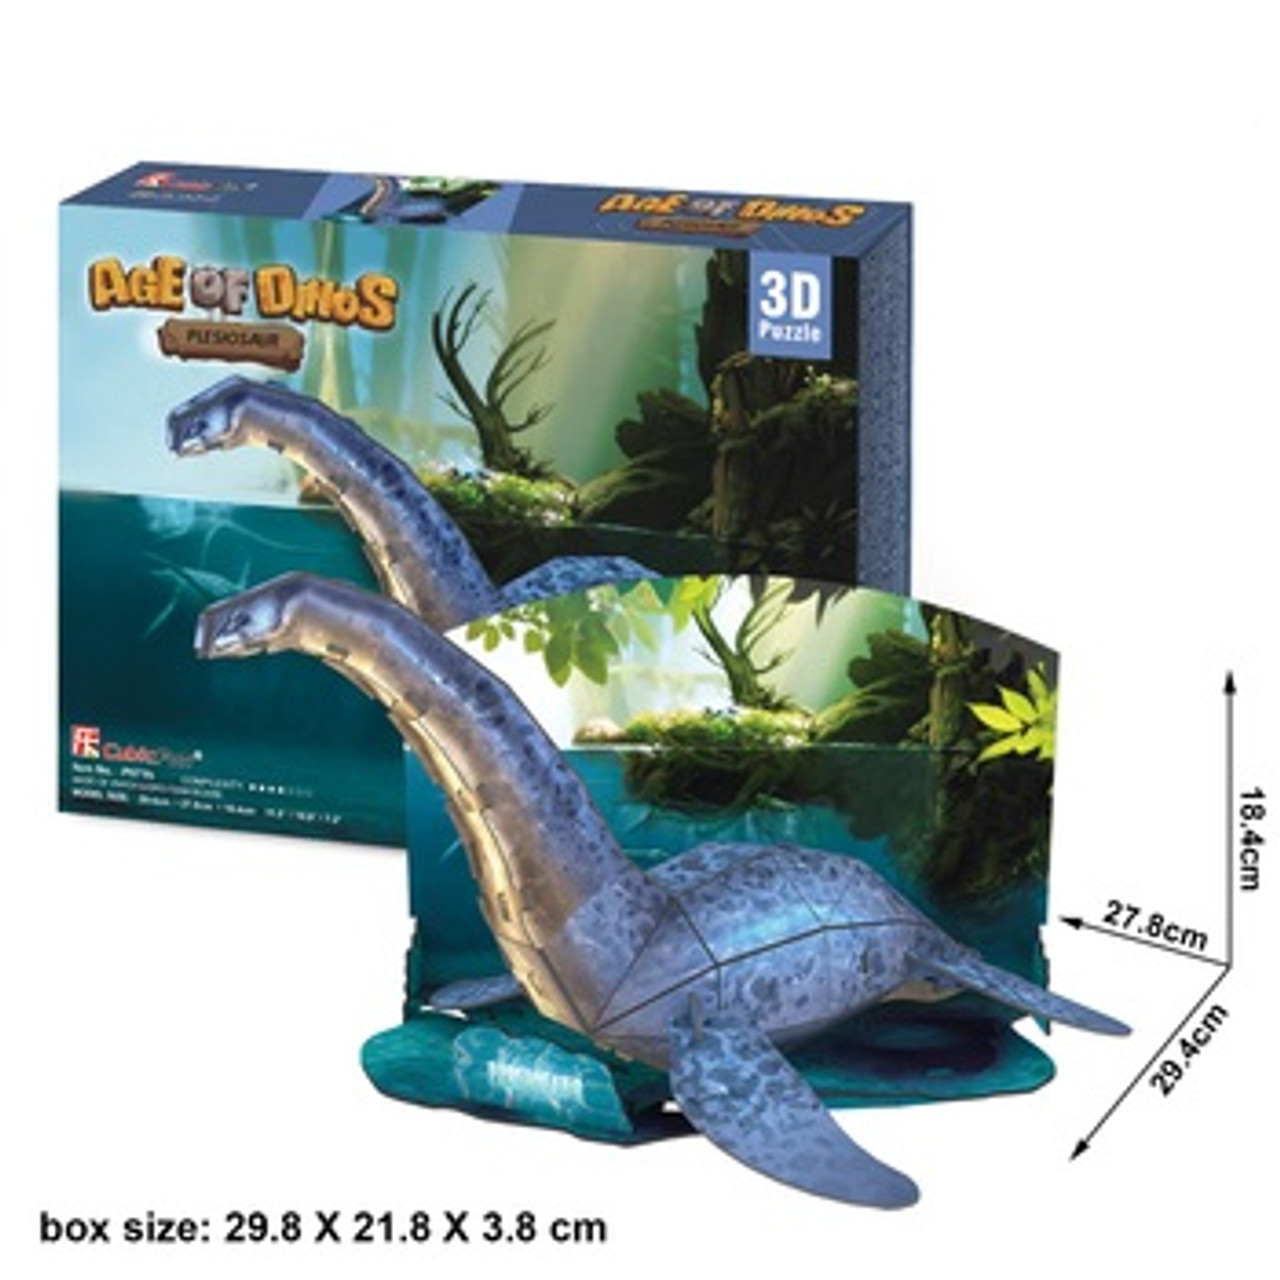 Plesiosaur model kit